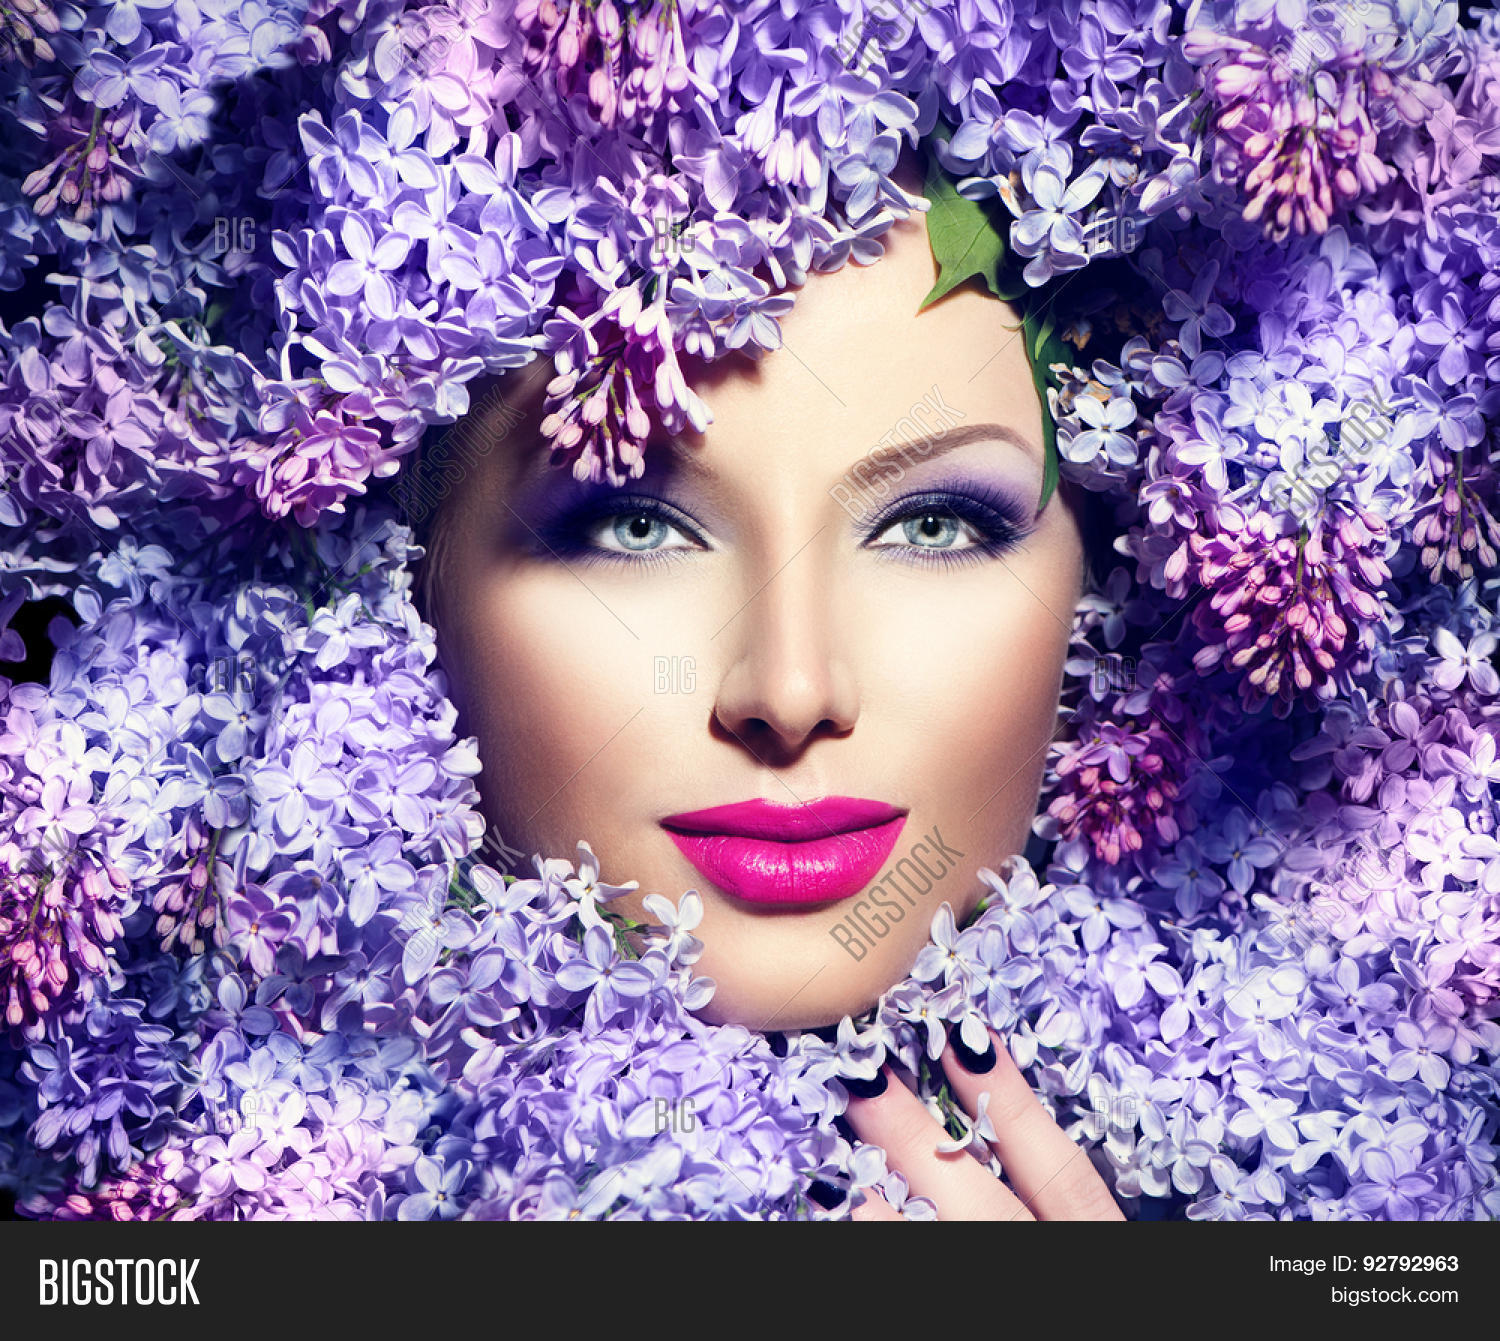 Beauty Fashion Model Image & Photo (Free Trial)